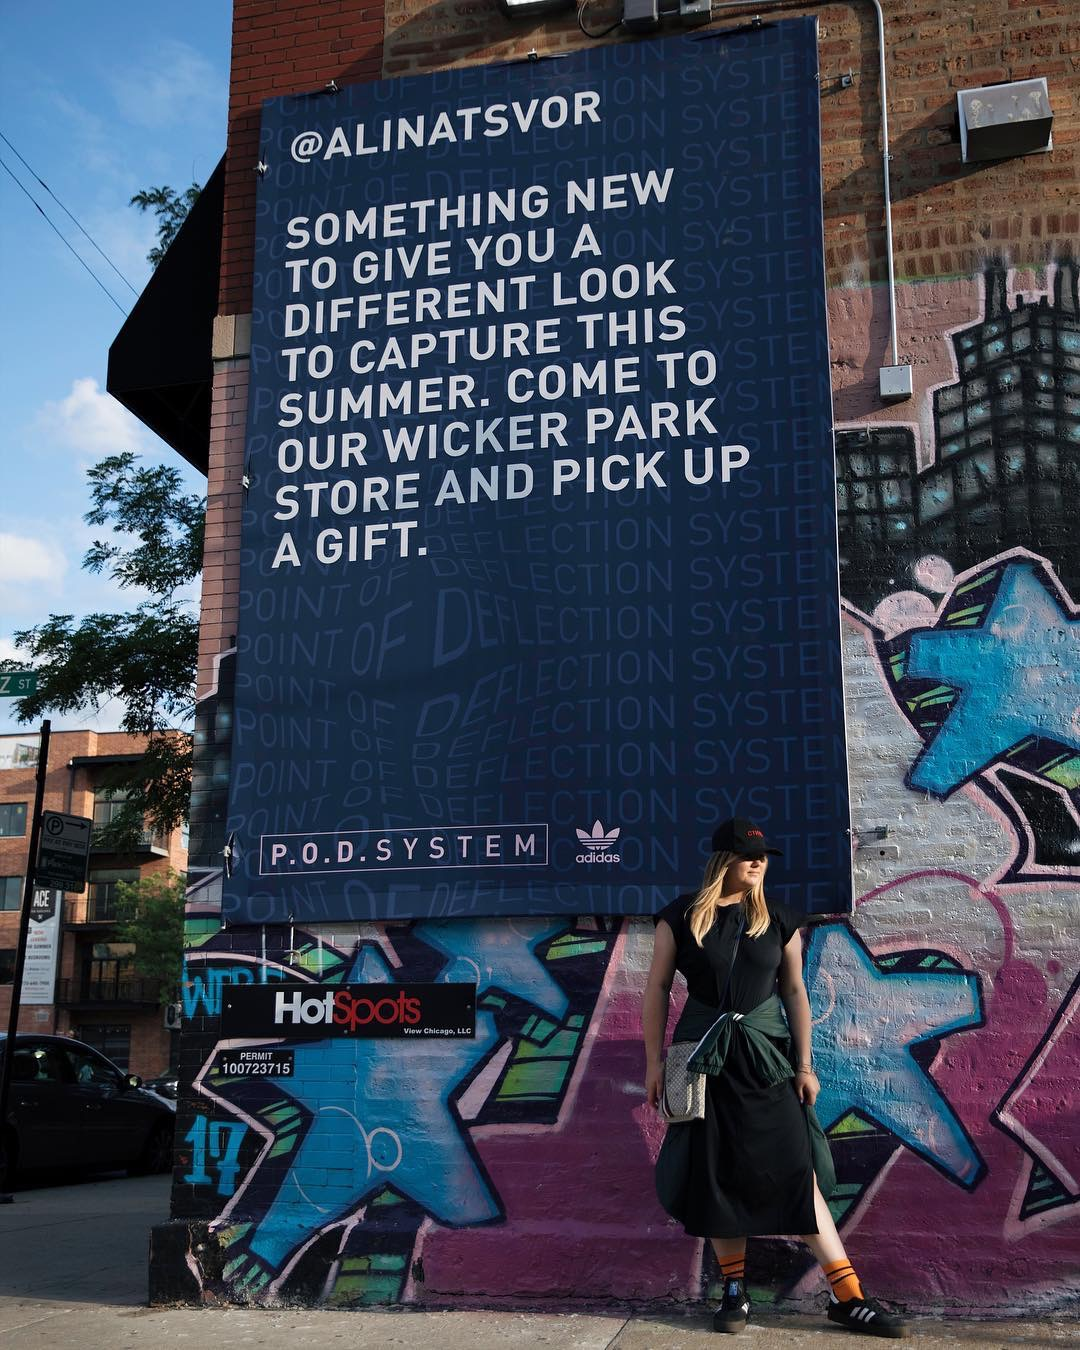 Adidas using OOH to compliment social strategy. Photo credit @alinatsvor